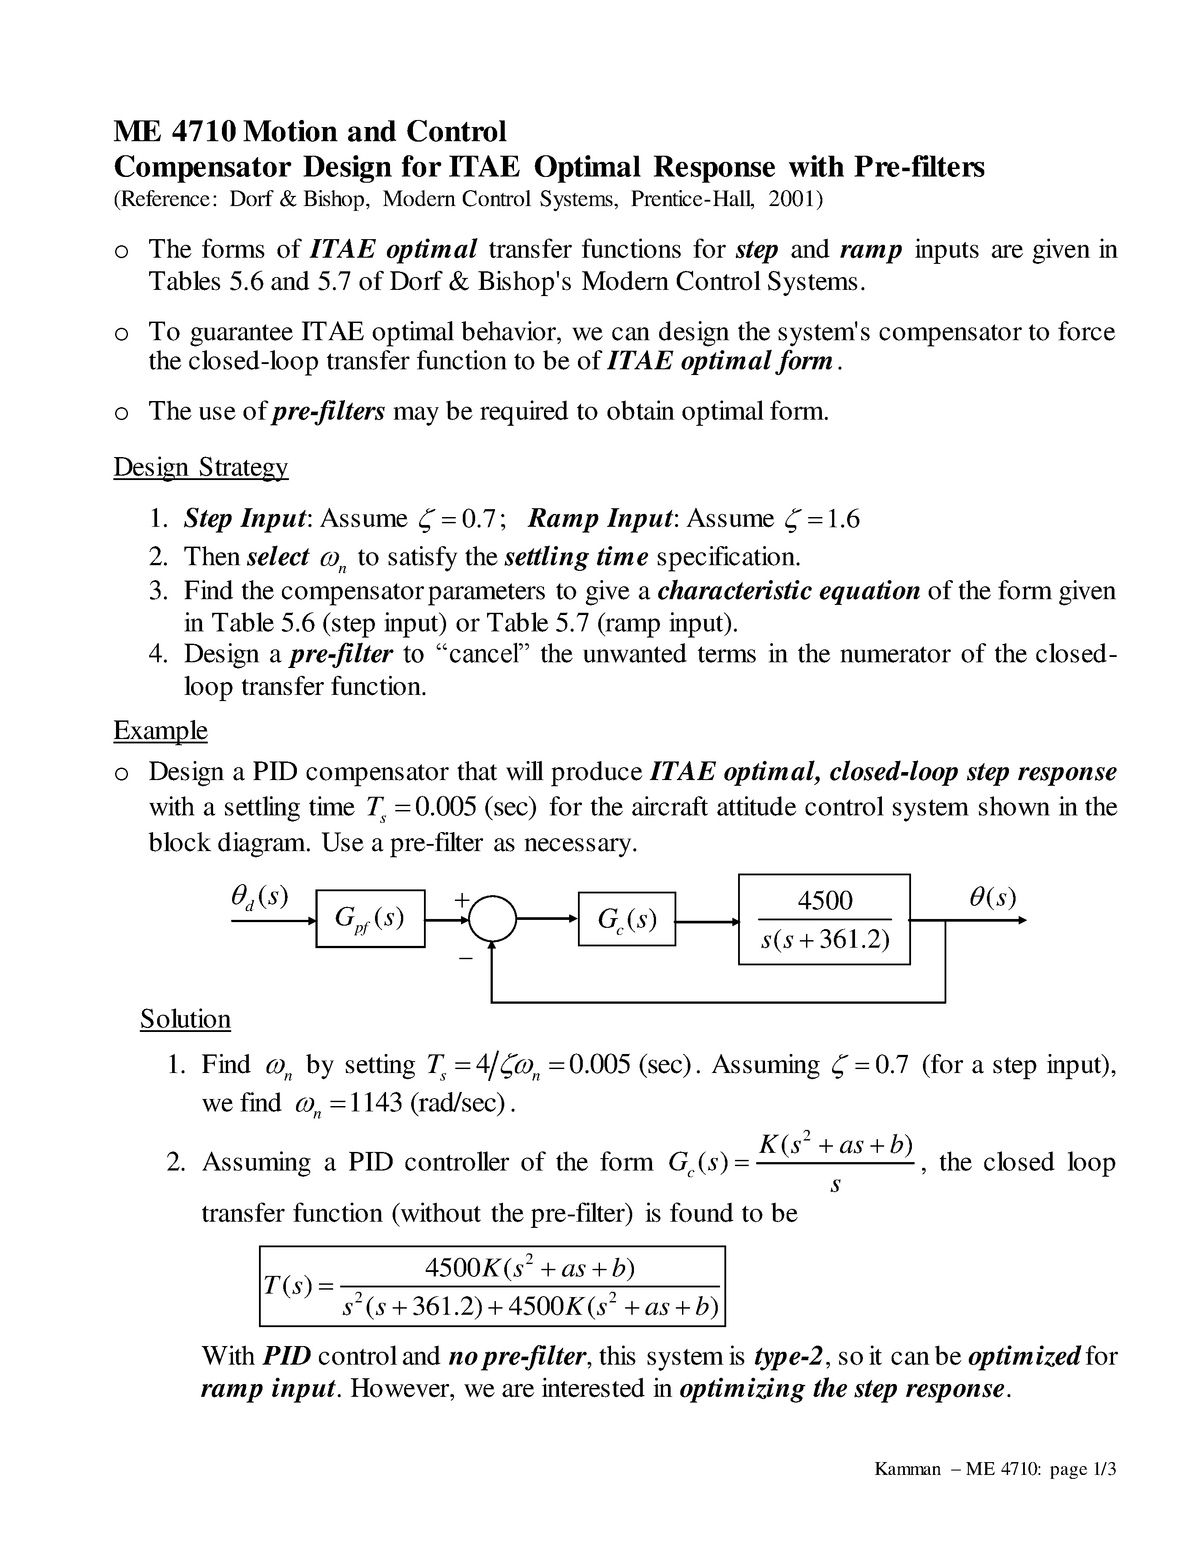 Lecture notes, lecture 1- Motion and Control - ME 4710 - ME